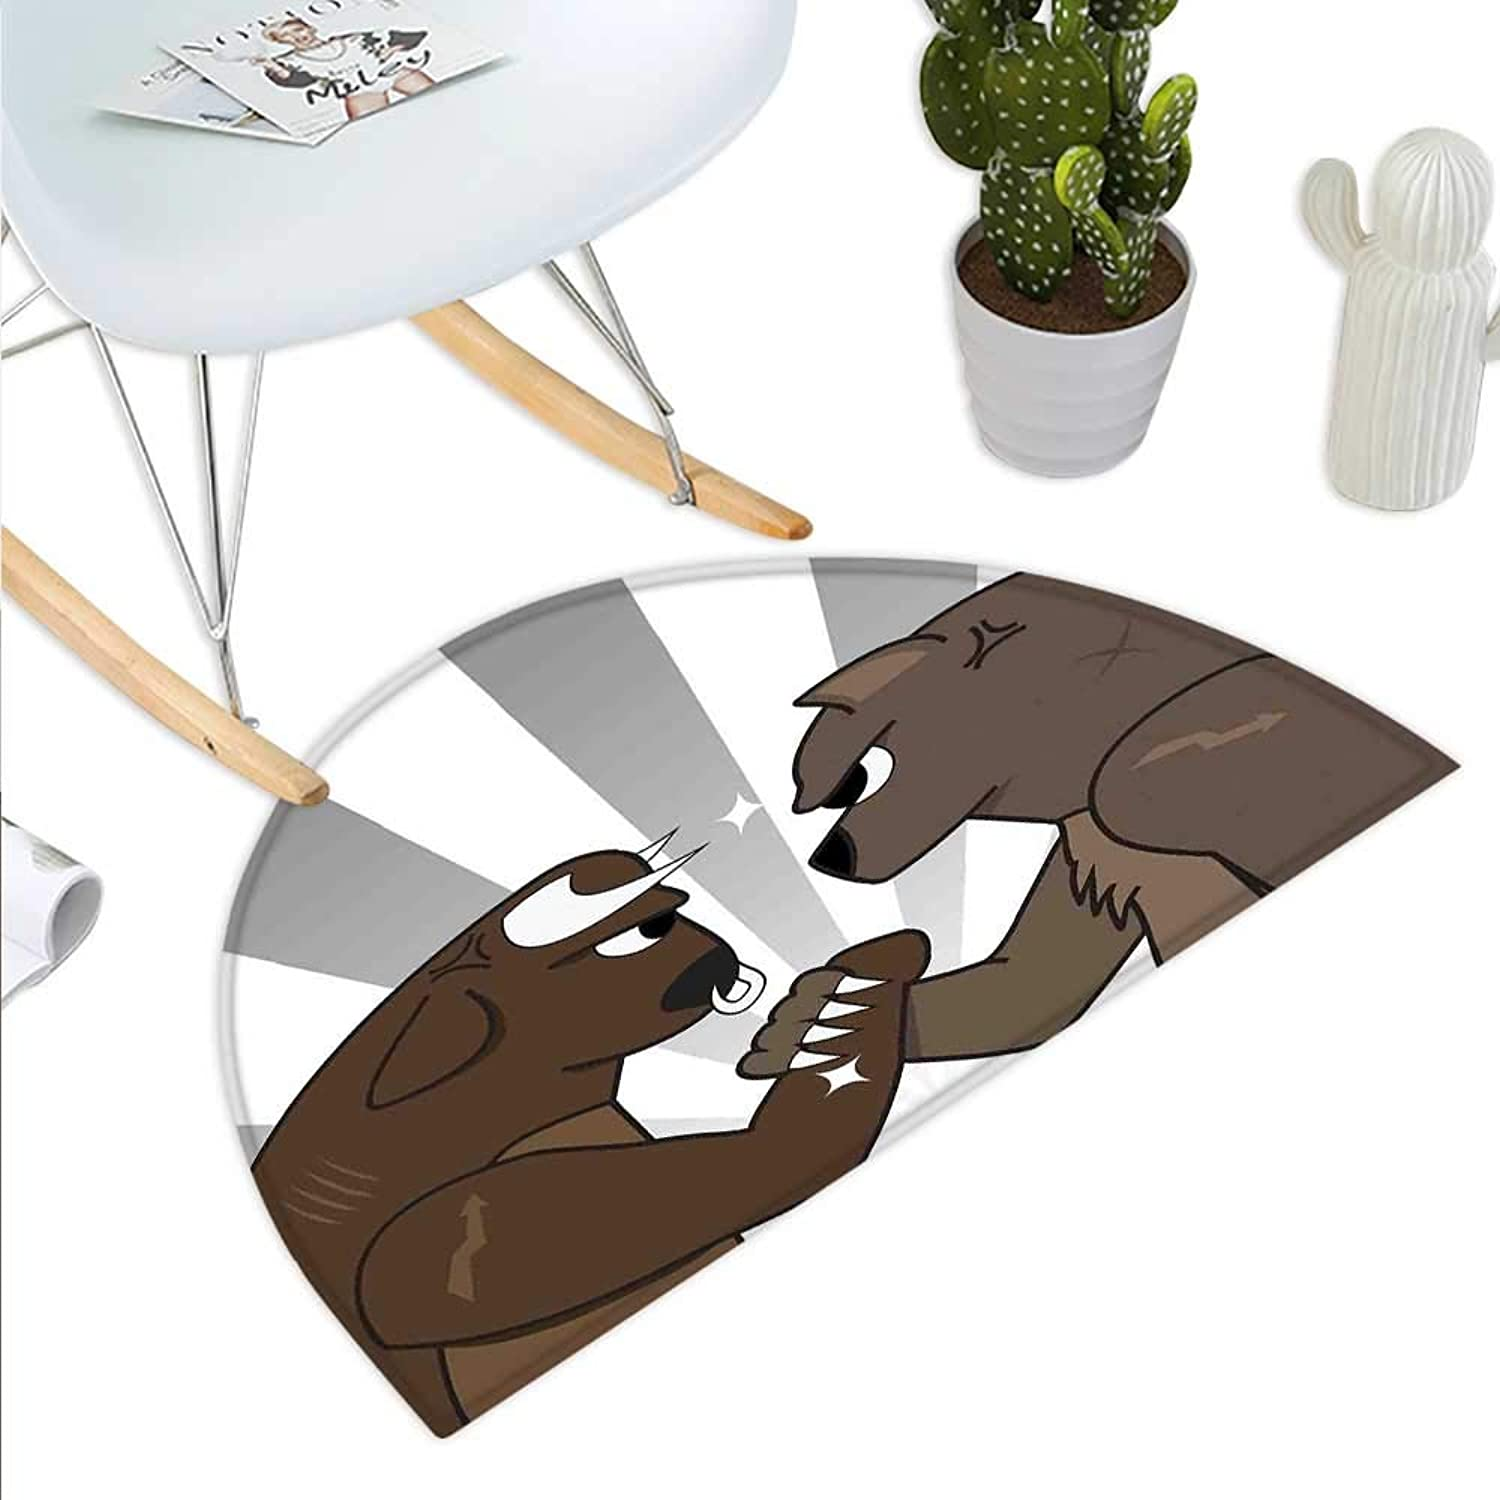 Cartoon Semicircle Doormat Bull Bear Preparing to Fight Striped Background Wild Competition Halfmoon doormats H 39.3  xD 59  Pale Grey Brown Army Green